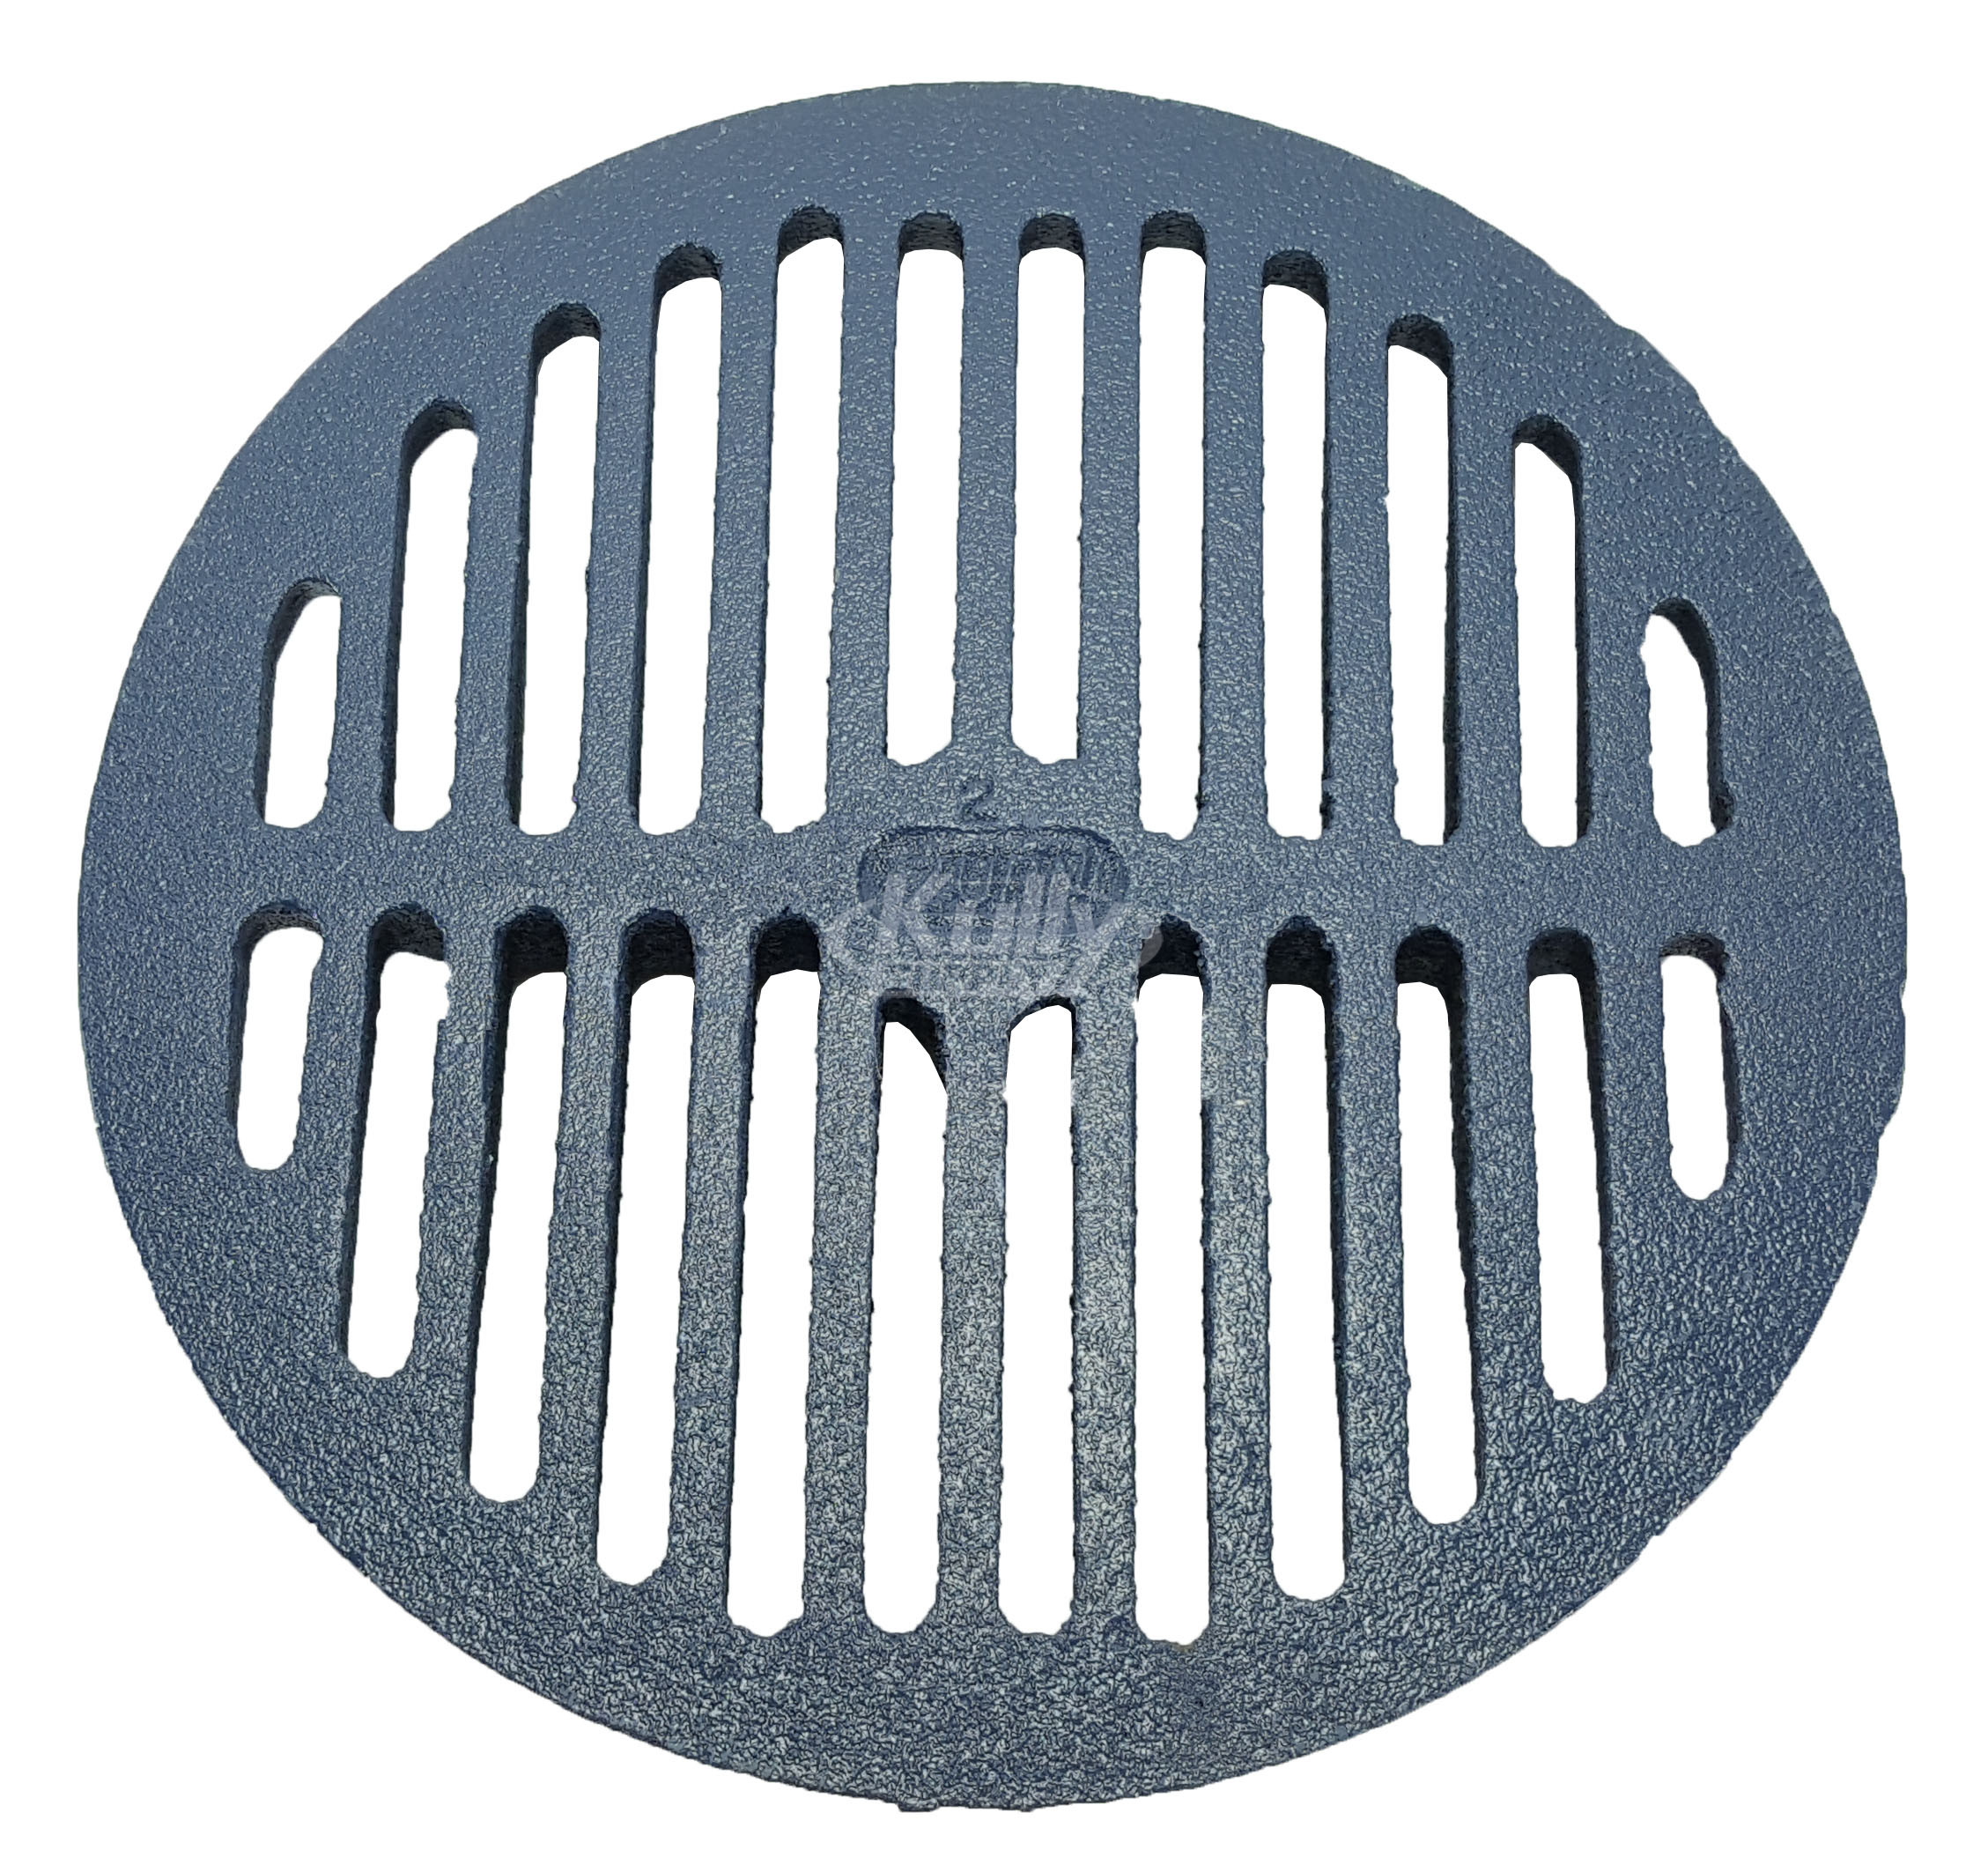 Zurn P550-GRATE-USA Grate for Z550